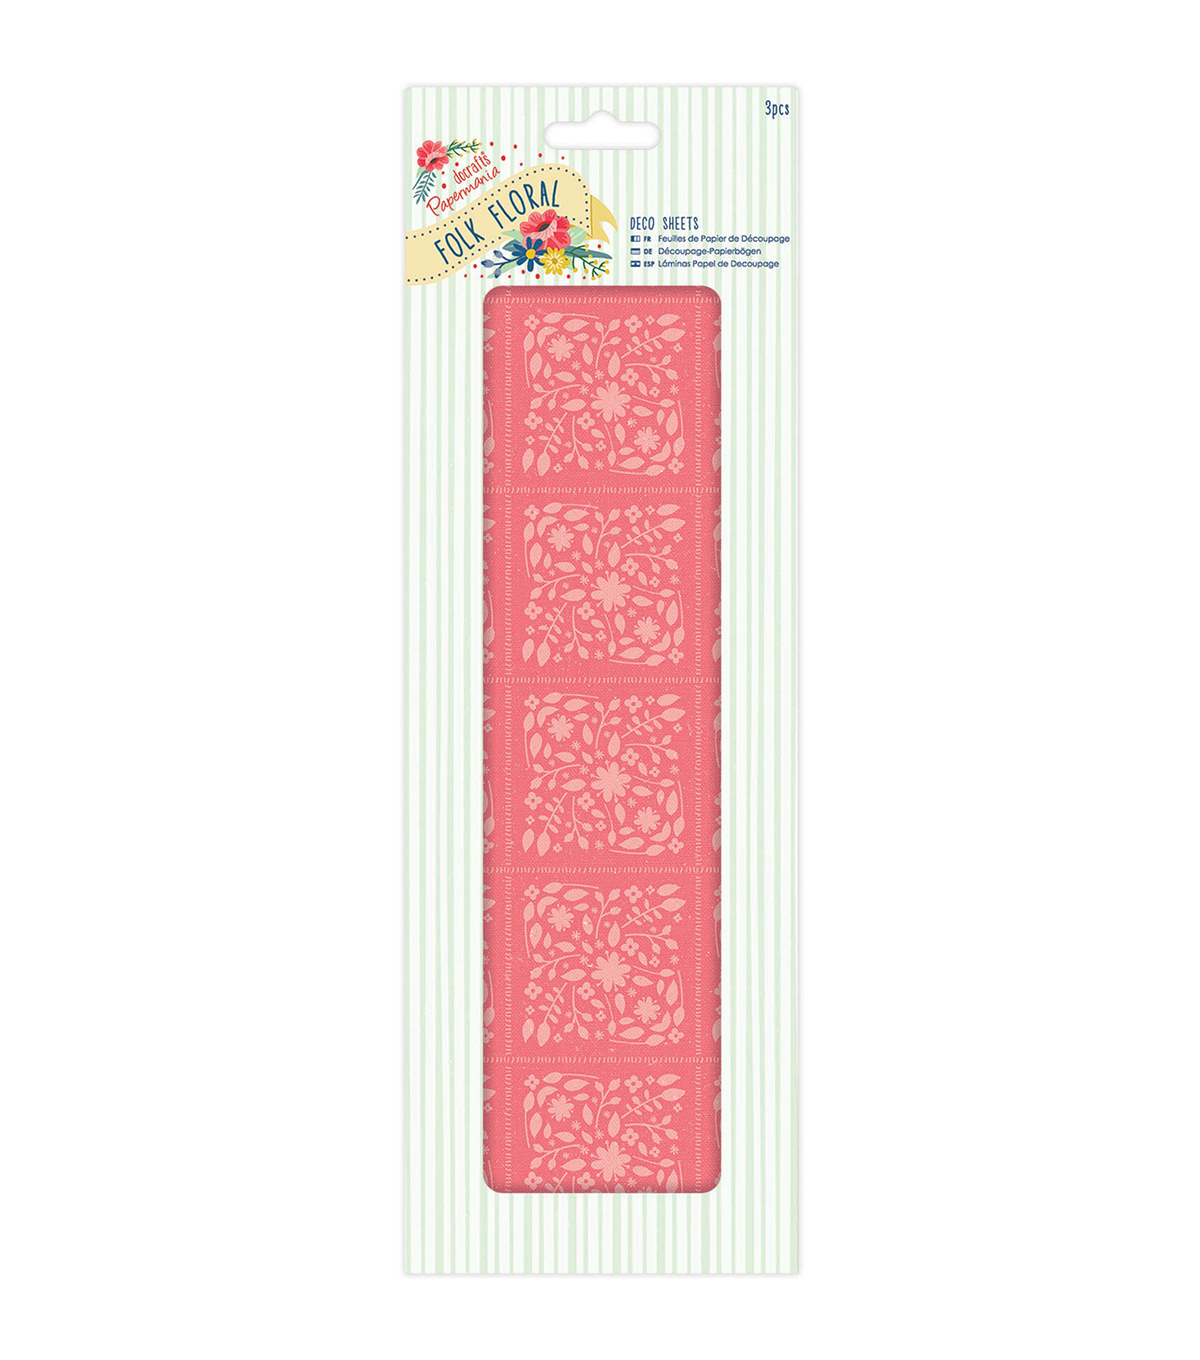 Papermania Folk Floral 3ct Deco Sheets-Coral Floral